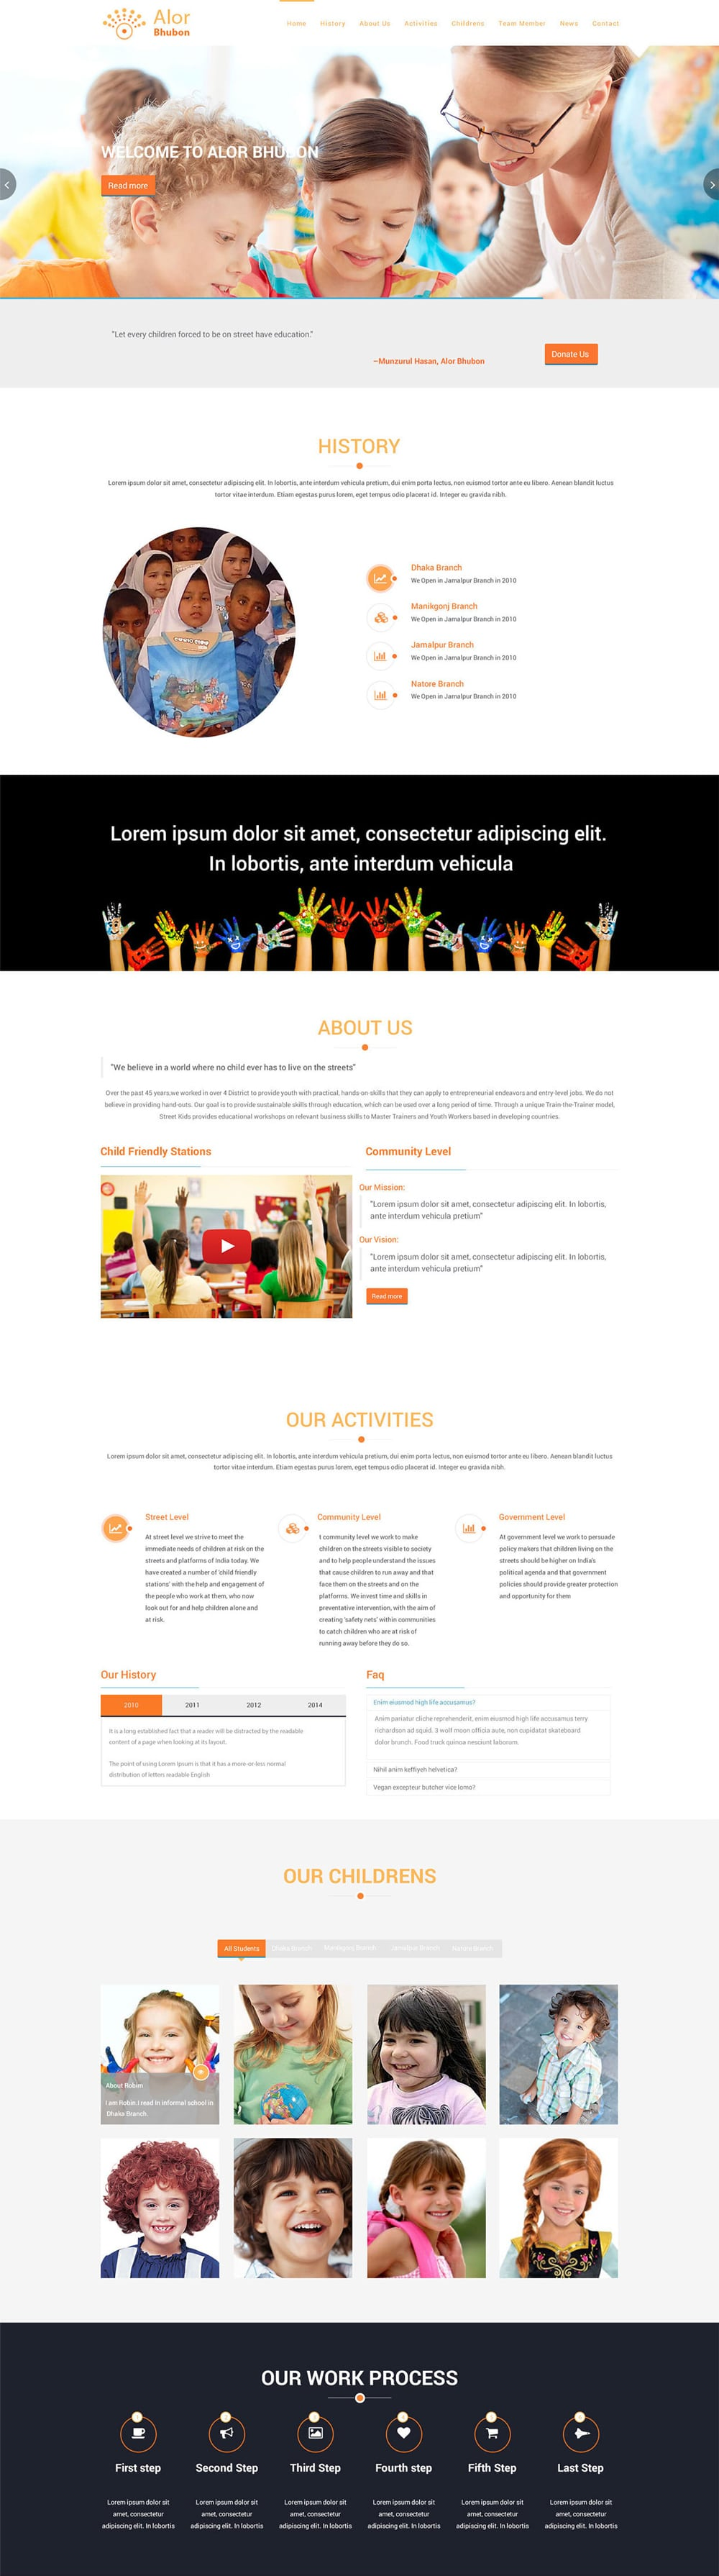 Free One Page Web Template PSD